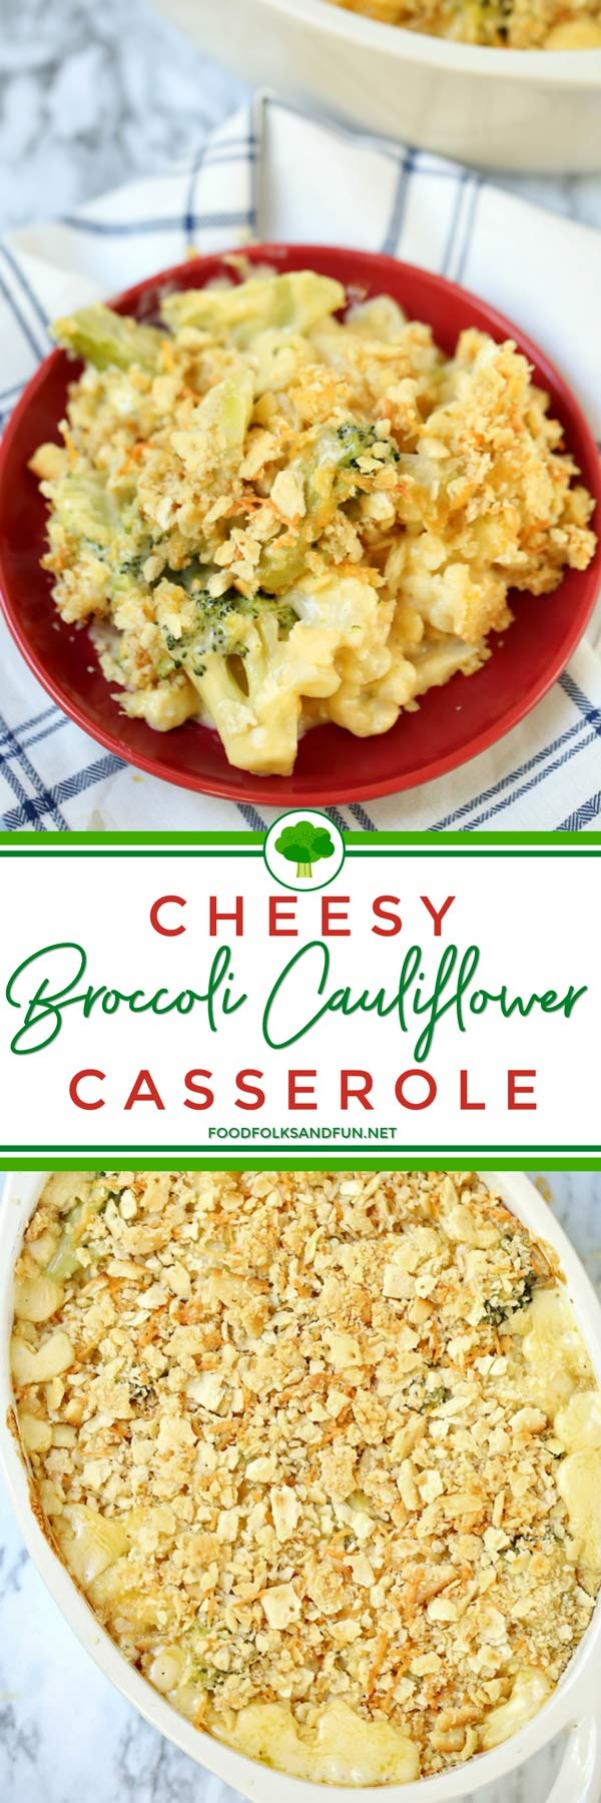 Best-Ever Cheesy Broccoli Cauliflower Casserole recipe!